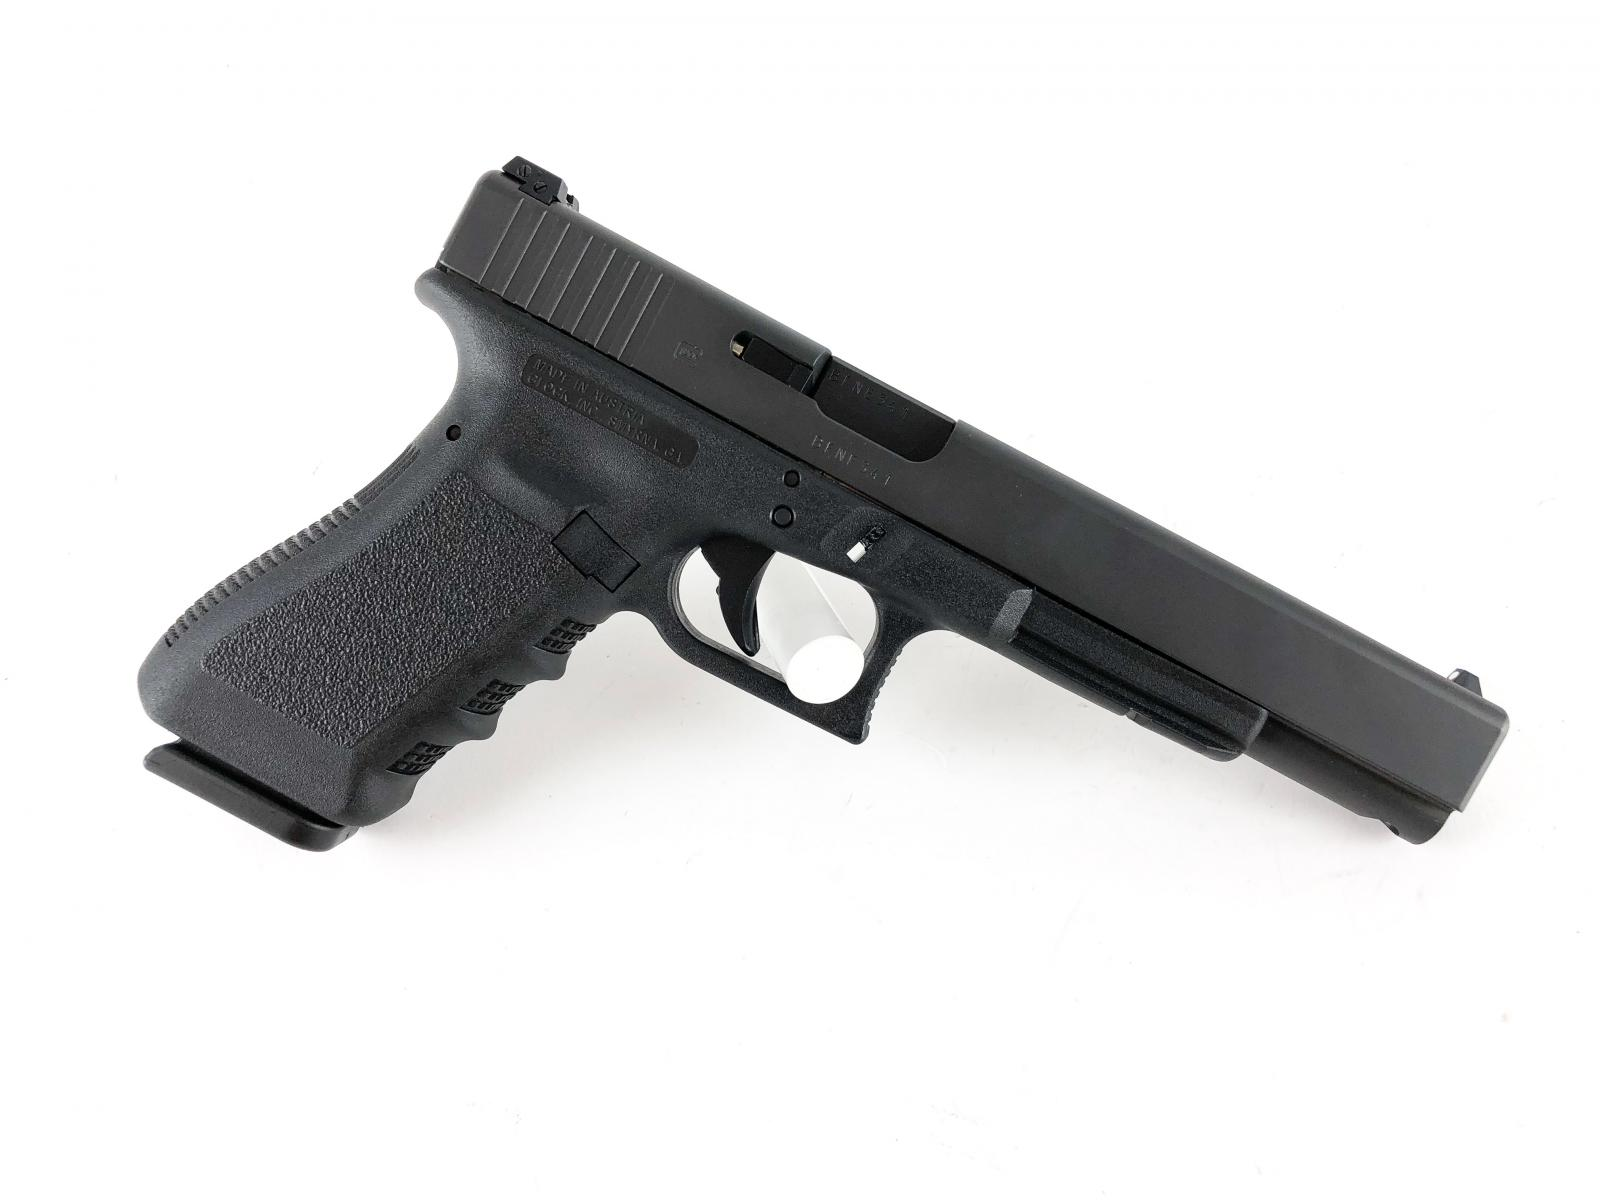 Glock 24 |40S&W 6 Inch Barrel Black Finish Fixed Sights Two 15 Round Magazines